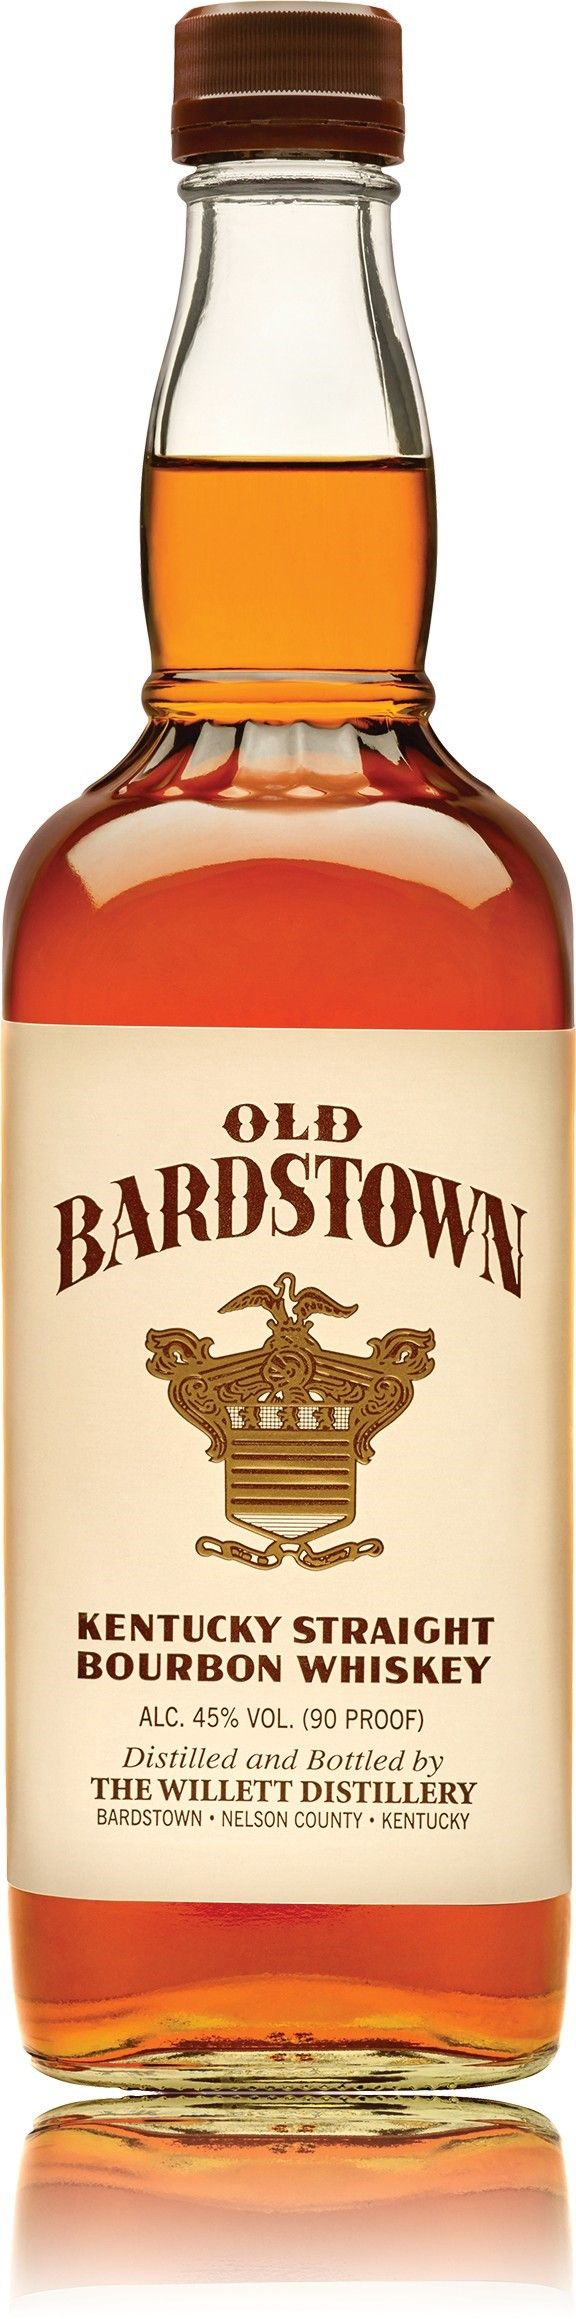 Old Bardstown Kentucky Straight Bourbon 90 Pf